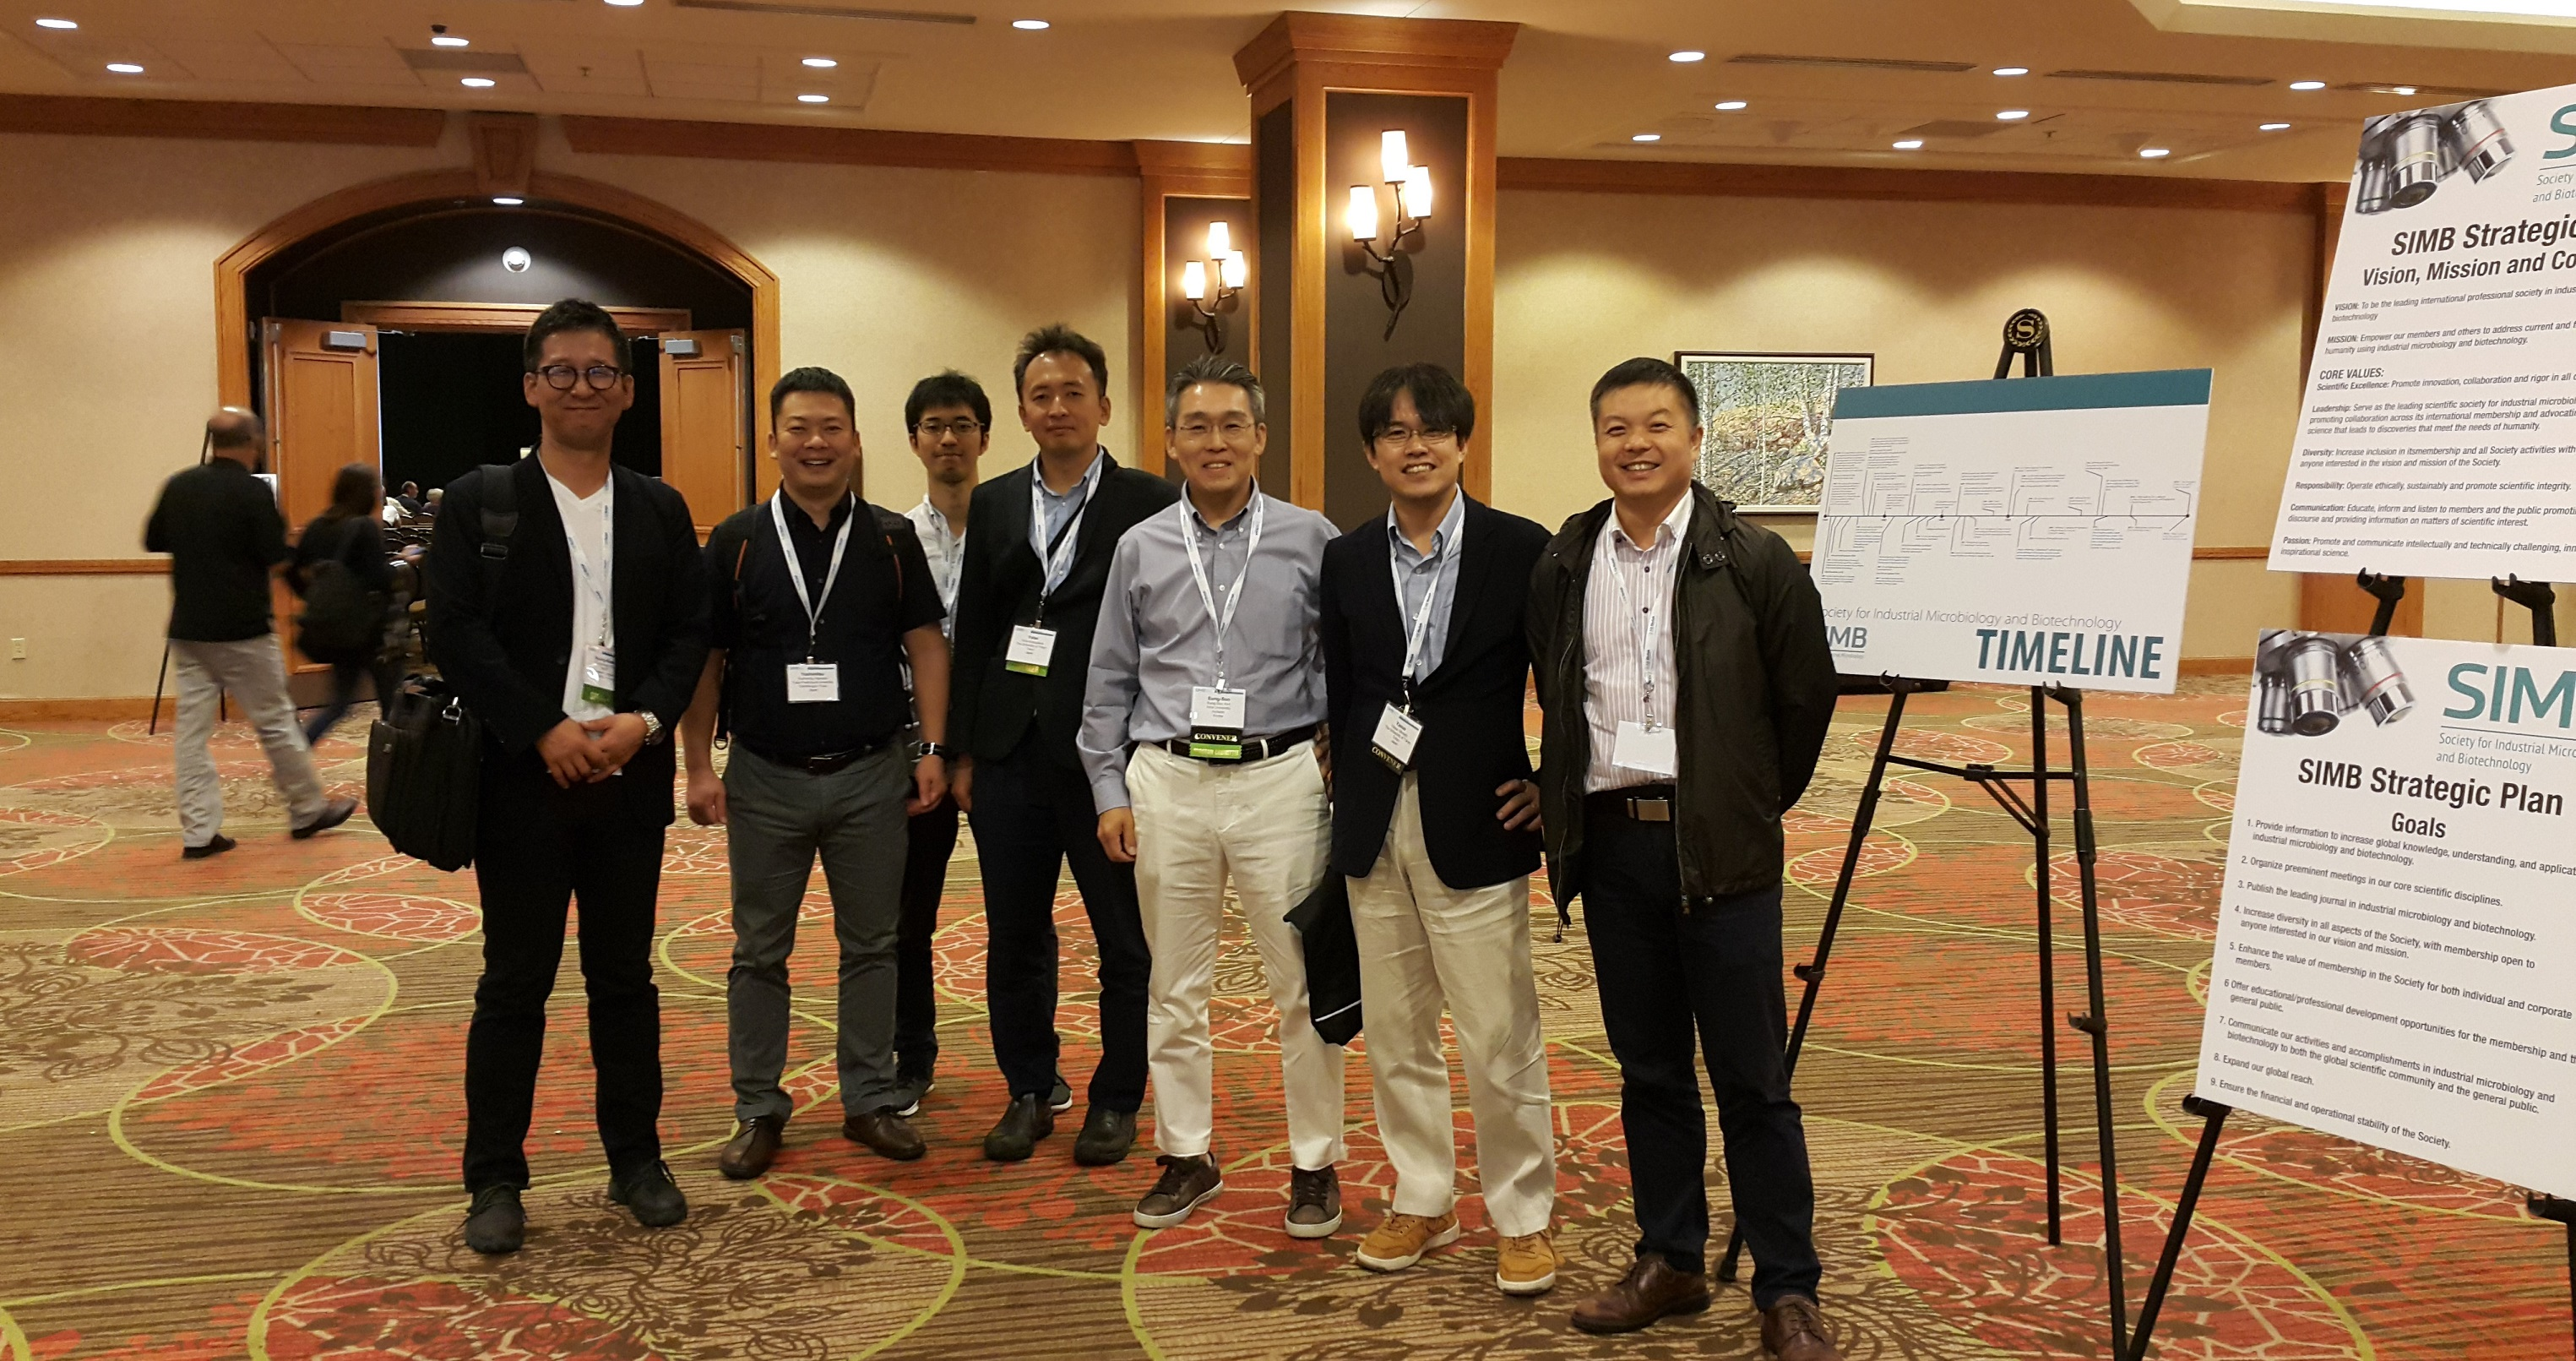 2017 SIMB Annual Meeting and Exhibition